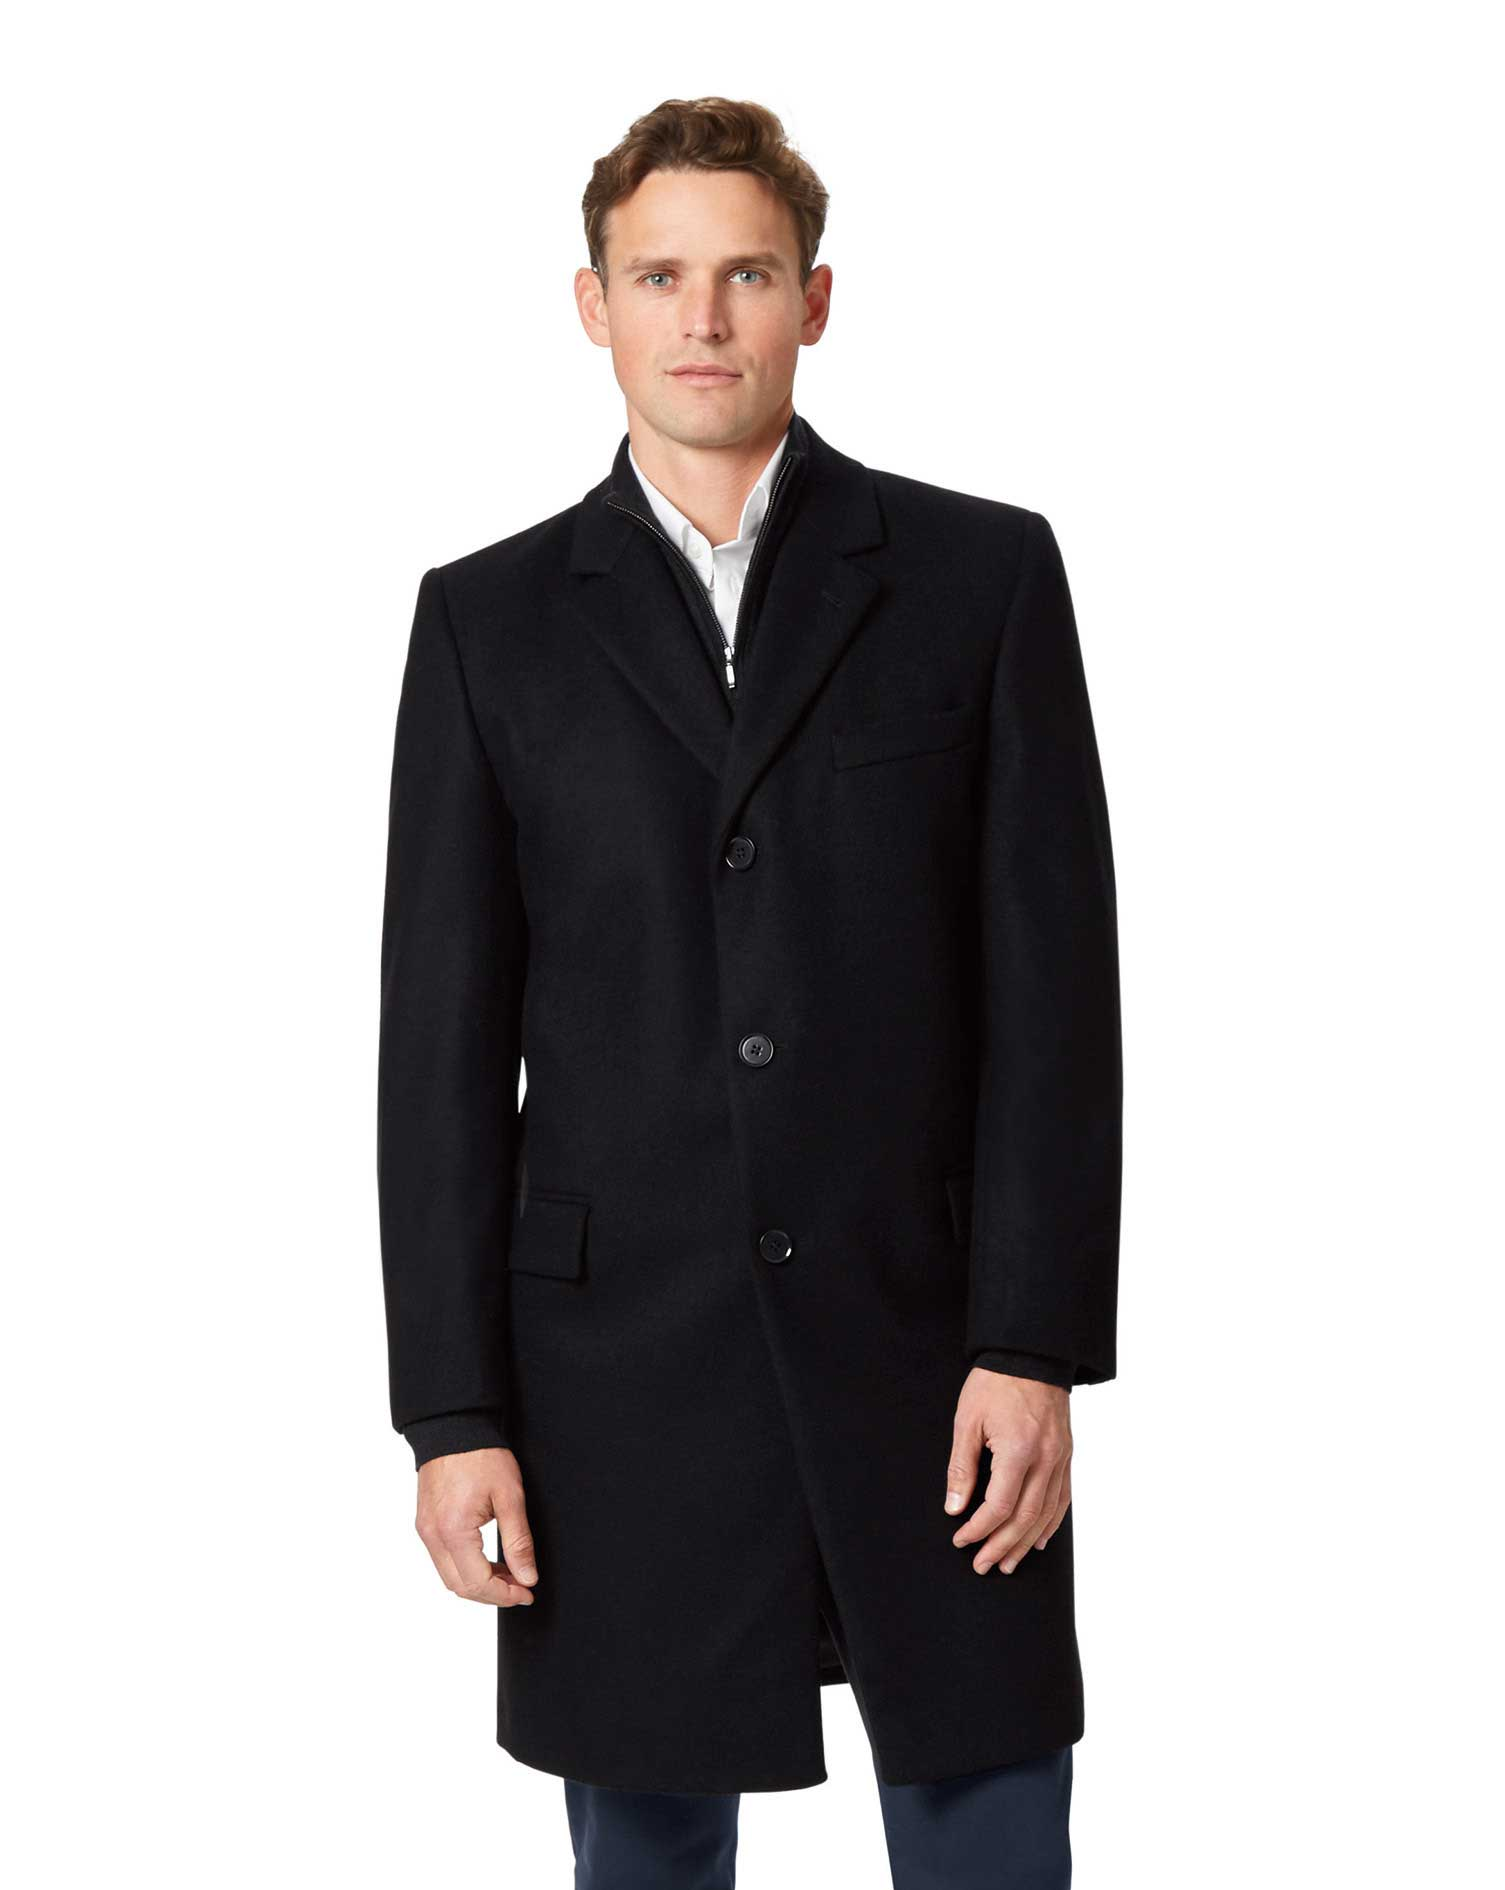 Black Italian Wool and Cashmere OverWool/cashmere coat Size 36 by Charles Tyrwhitt